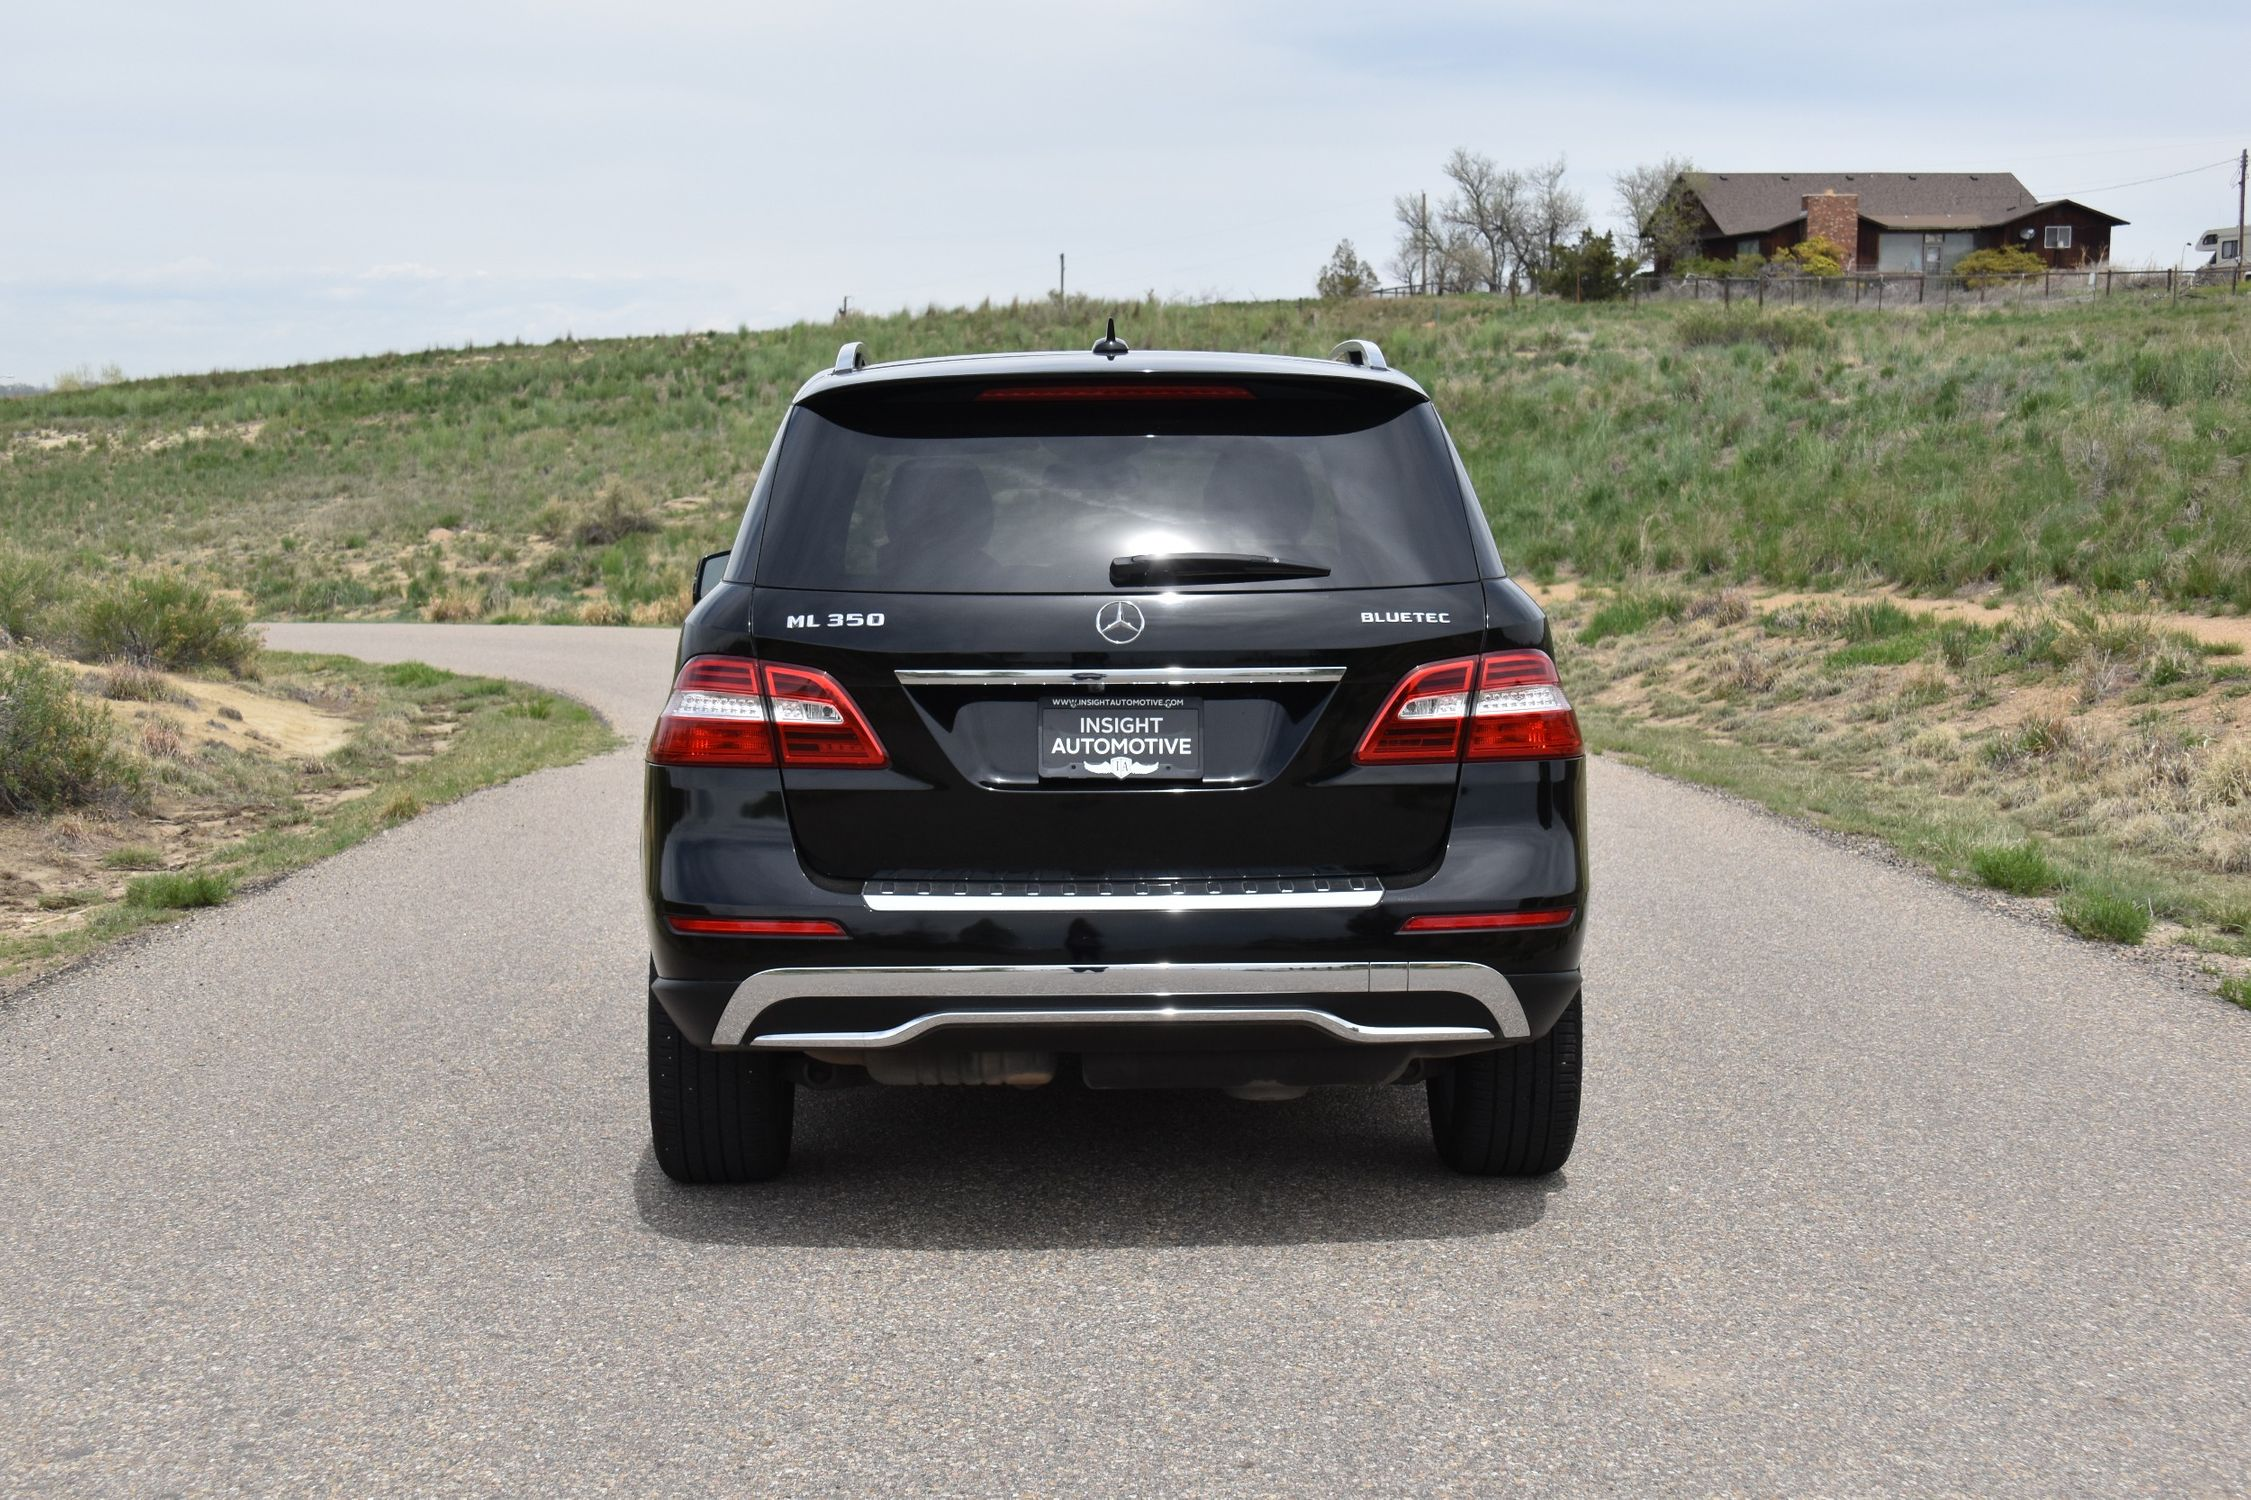 RR%2F2Y%2F7T%2F4XTAZZSXB9BEKI Cool Review About 2012 Mercedes Ml350 Bluetec